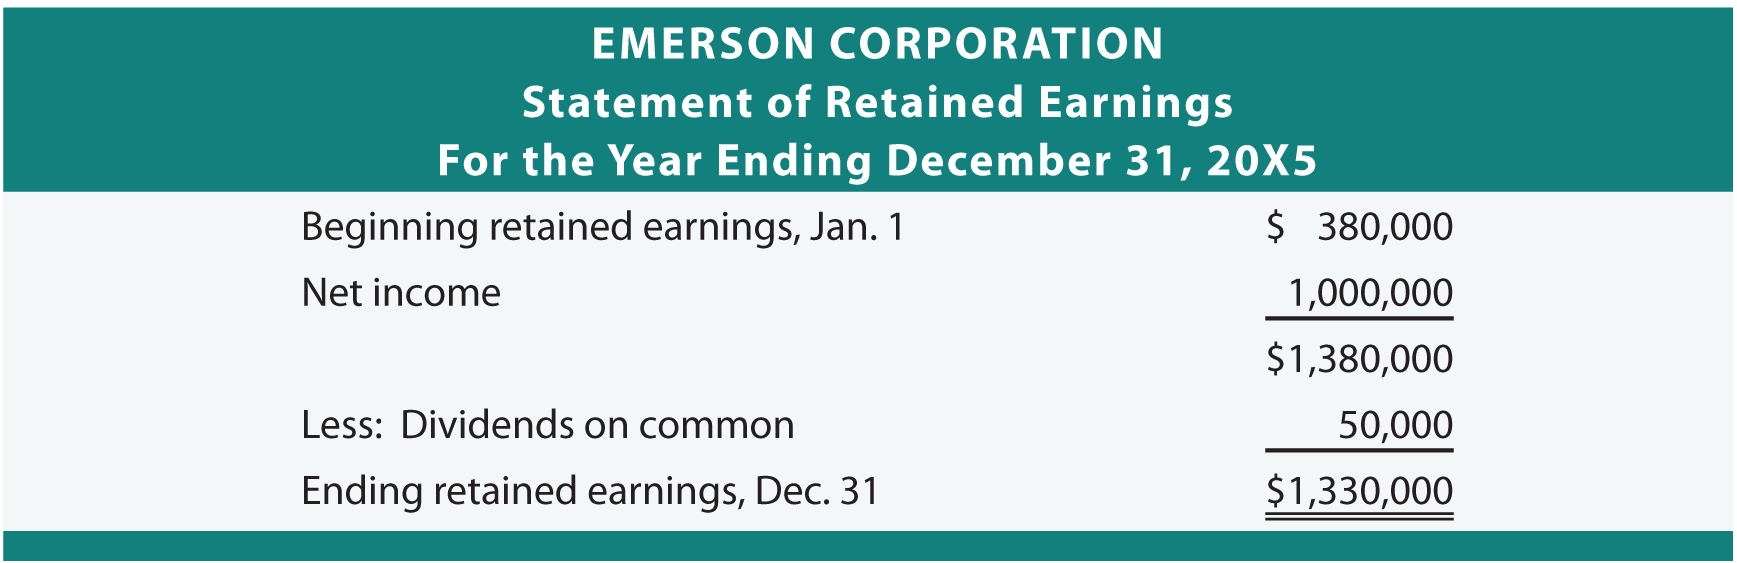 statement of retained earnings template